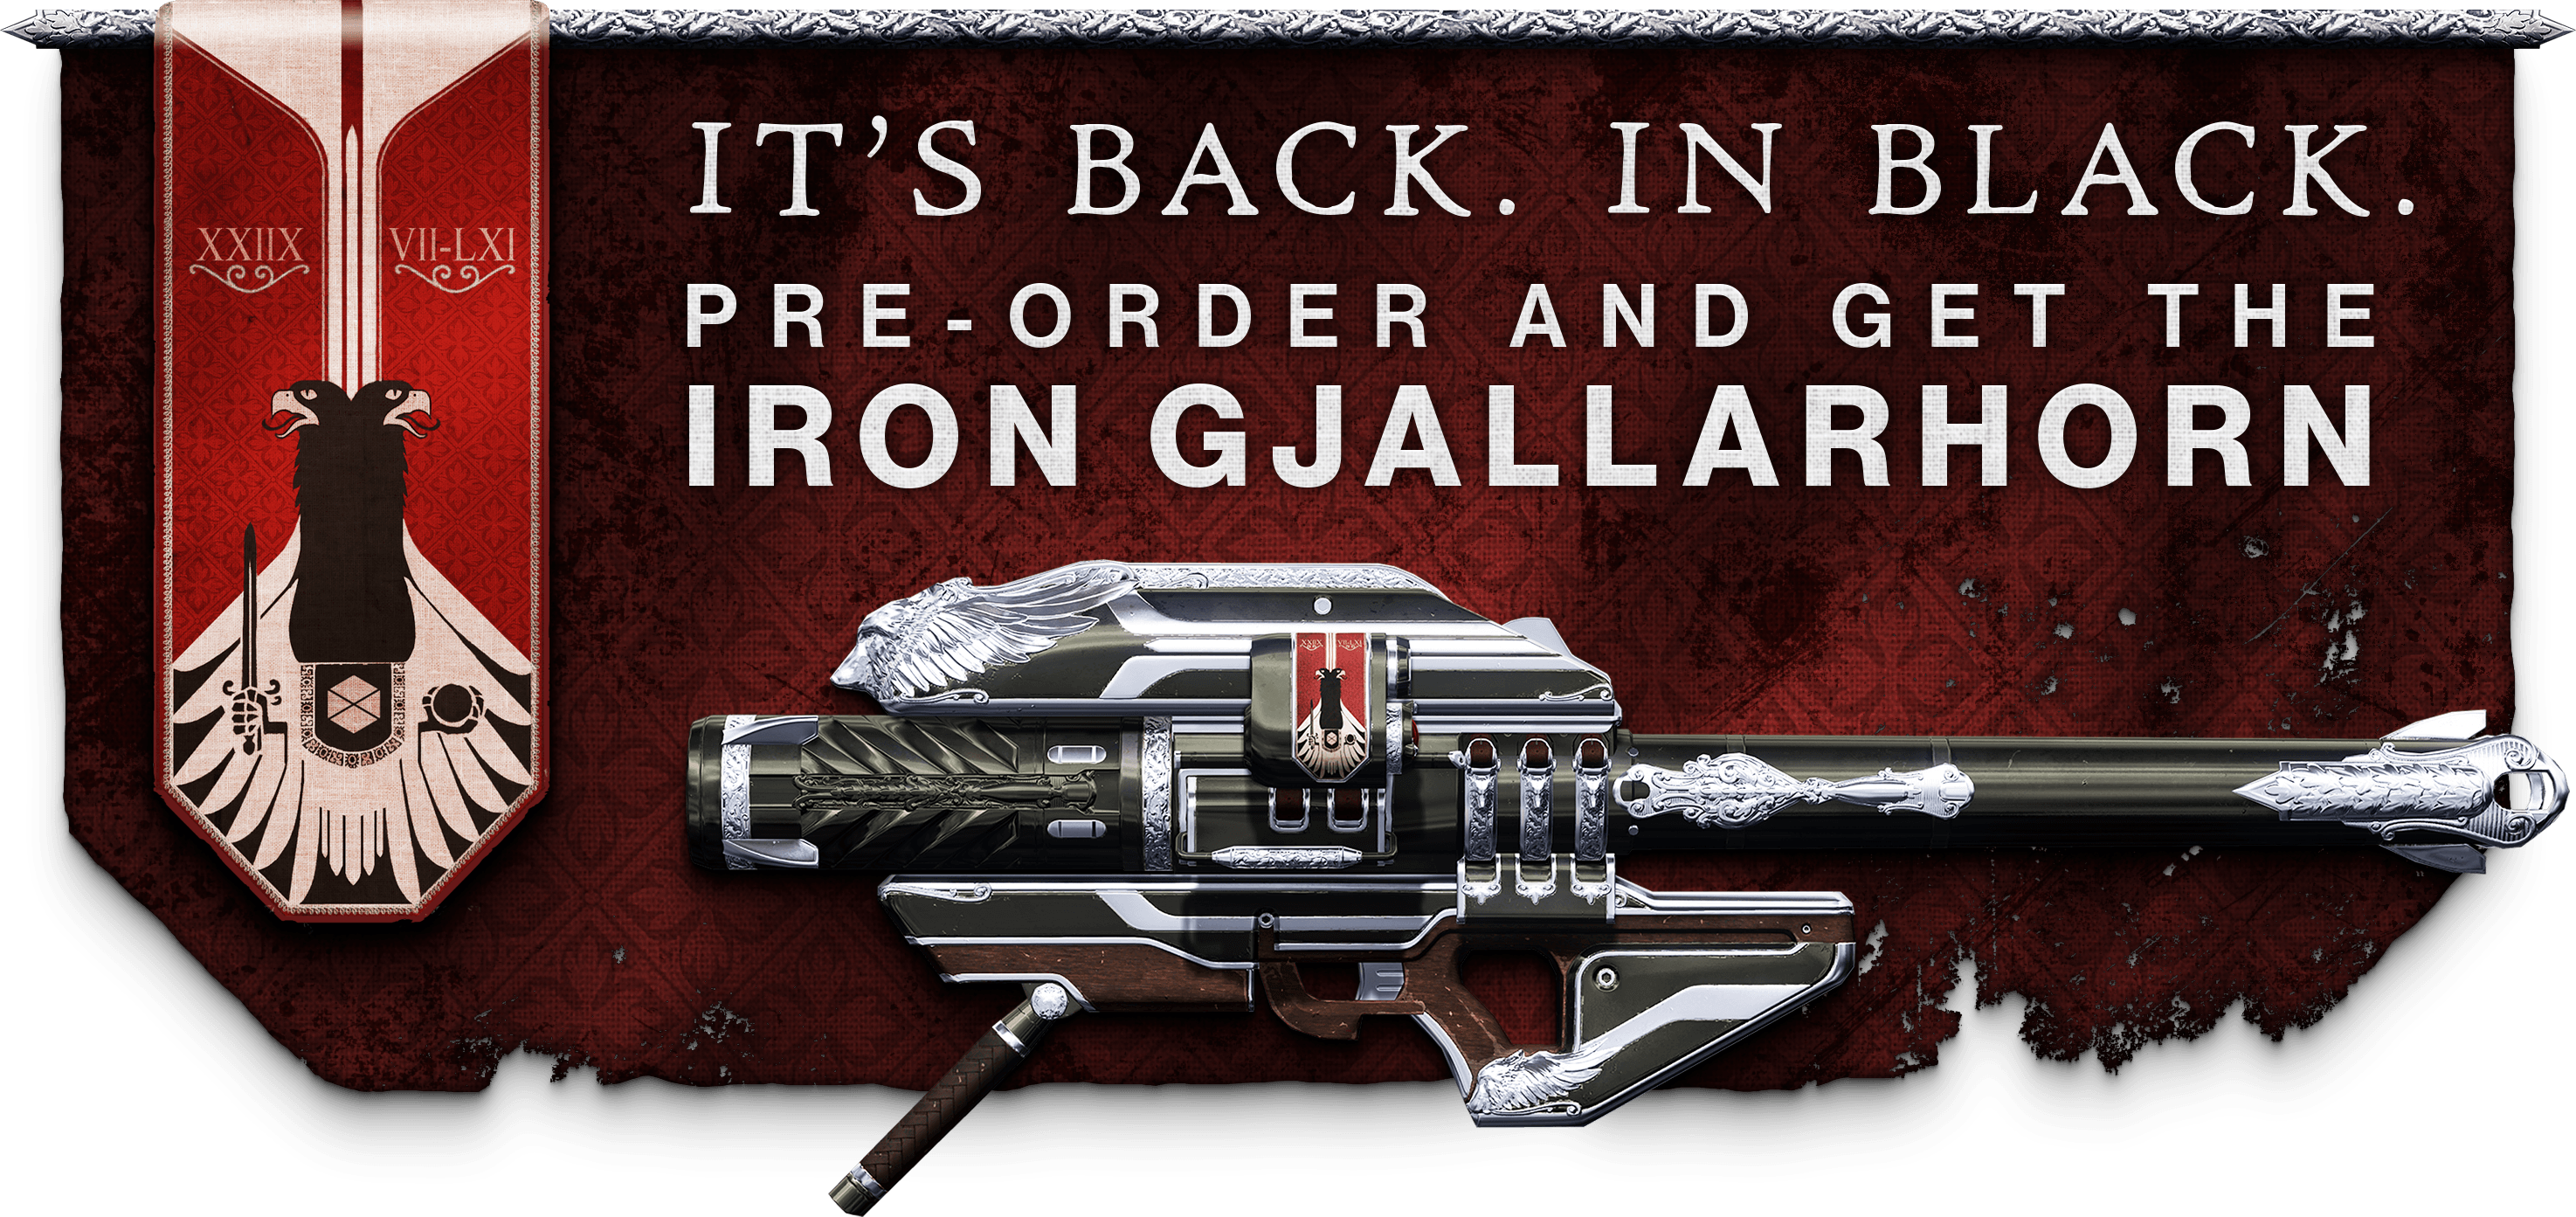 black and silver Iron Gjallarhorn Rocket Launcher